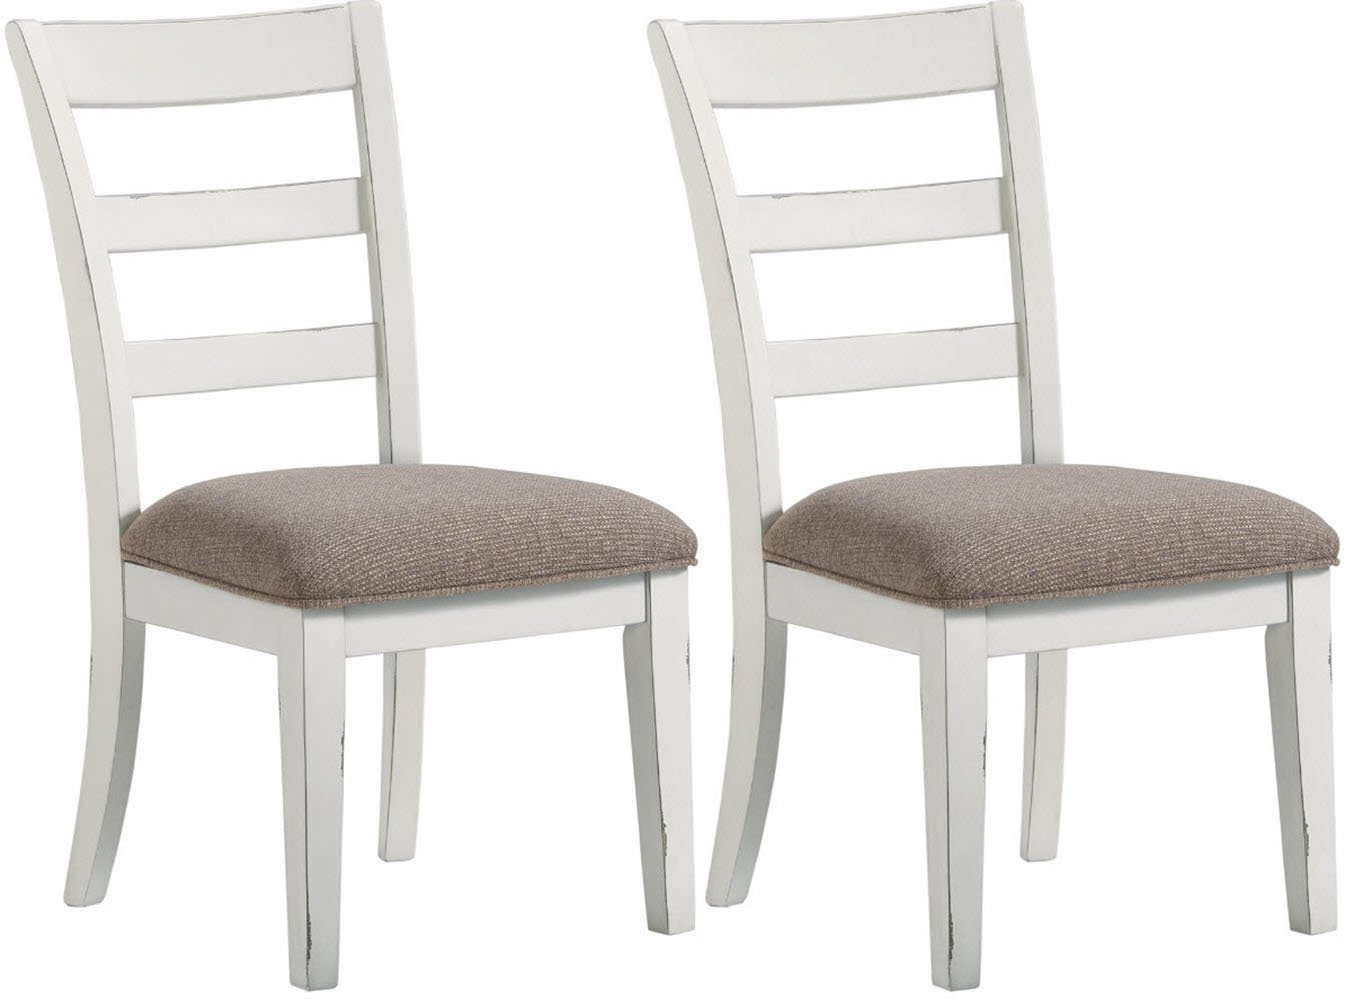 Signature Design by Ashley D754-01 Grindleburg Dining Chair, Antique White Ashley Furniture